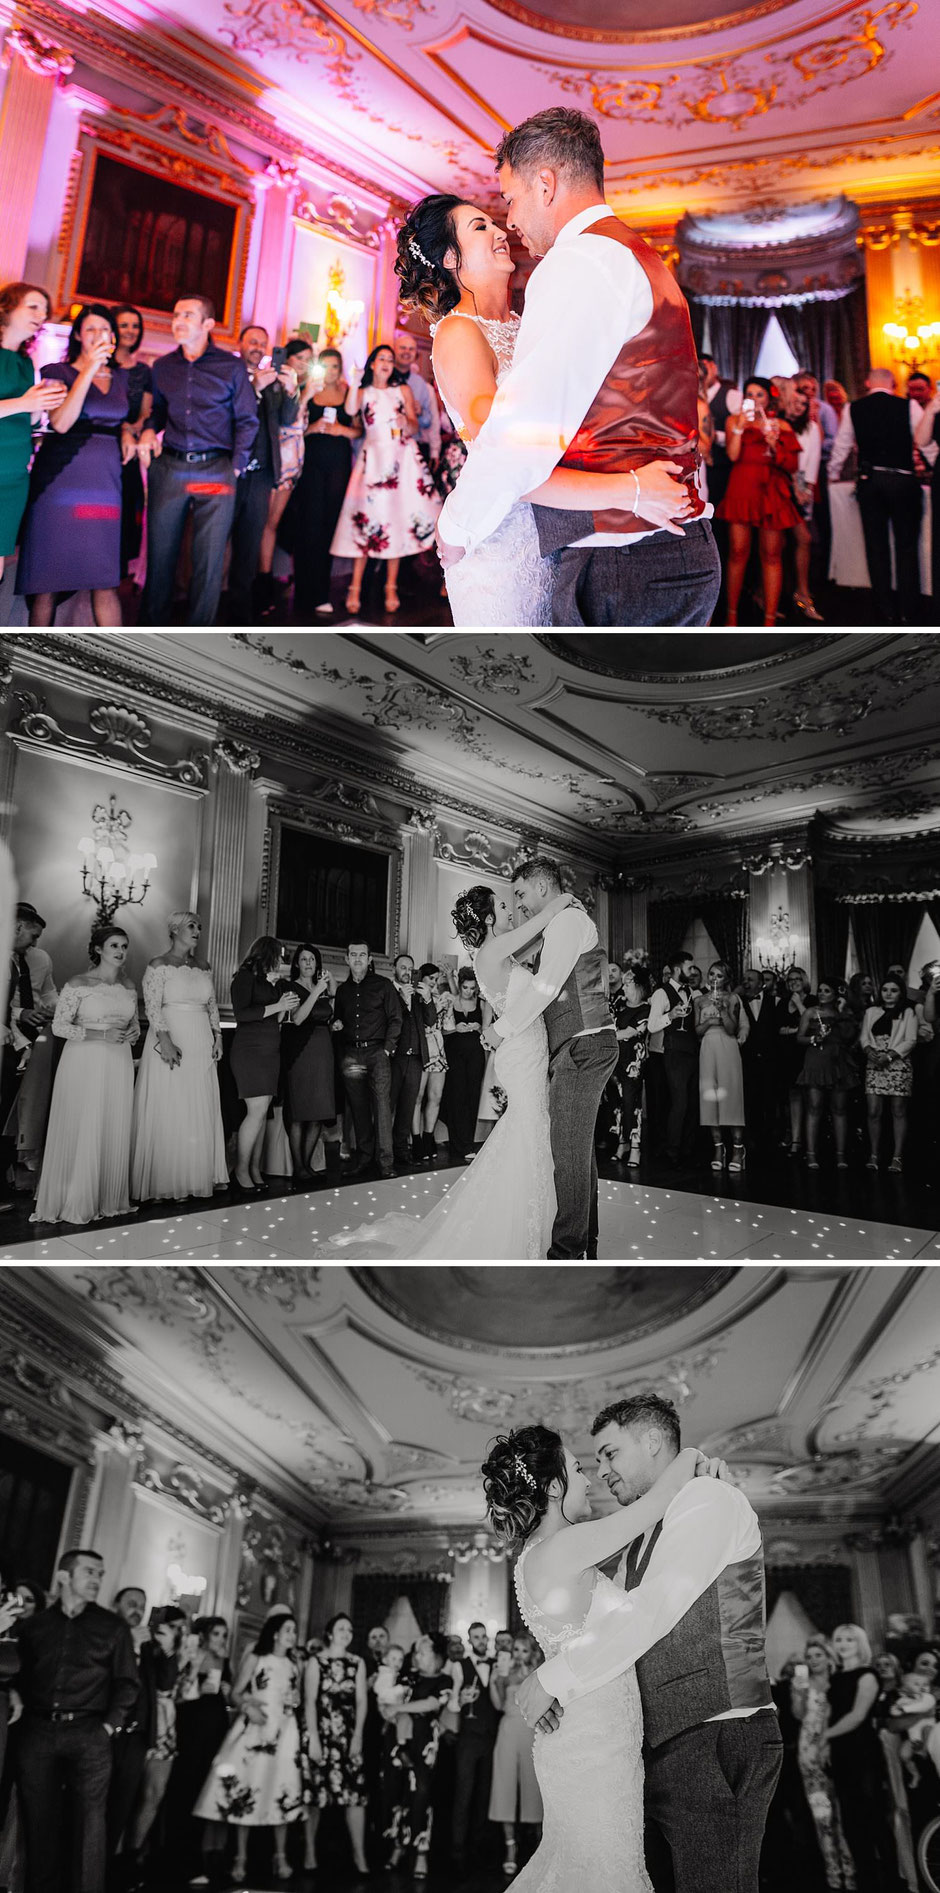 photographs of a bride and groom dancing in front of their guests